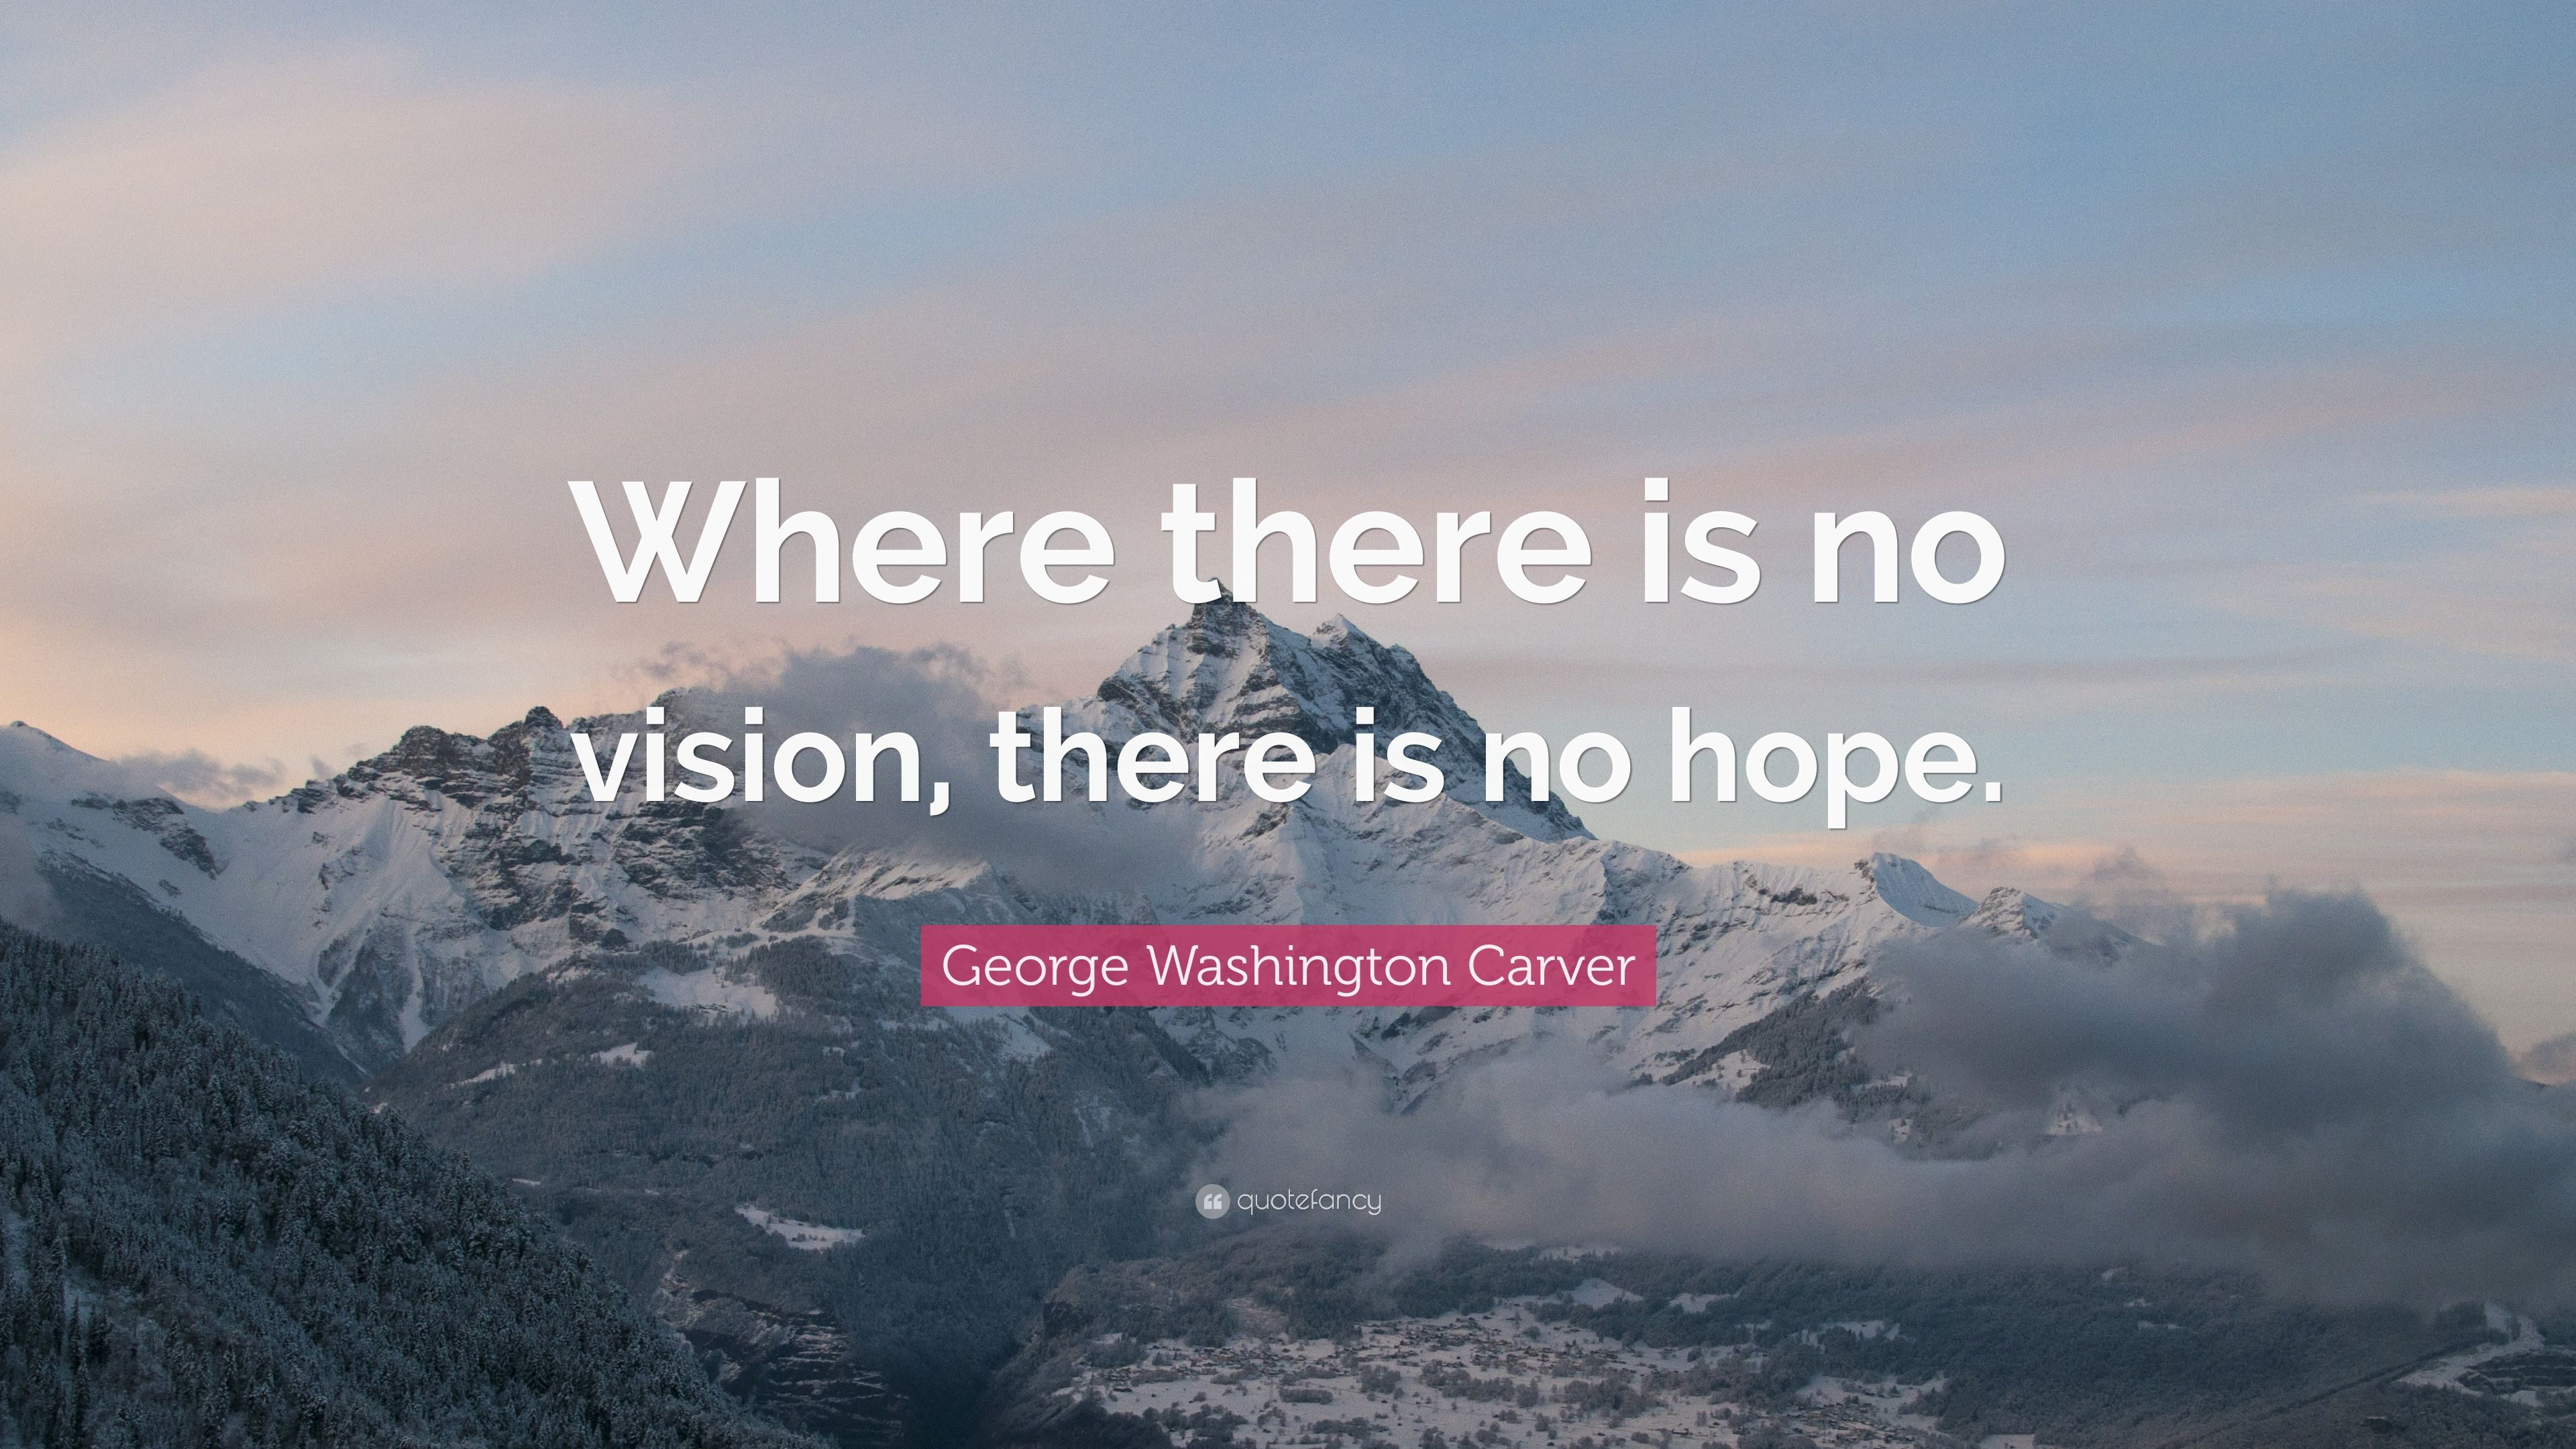 George Washington Carver Quotes (58 wallpapers) - Quotefancy